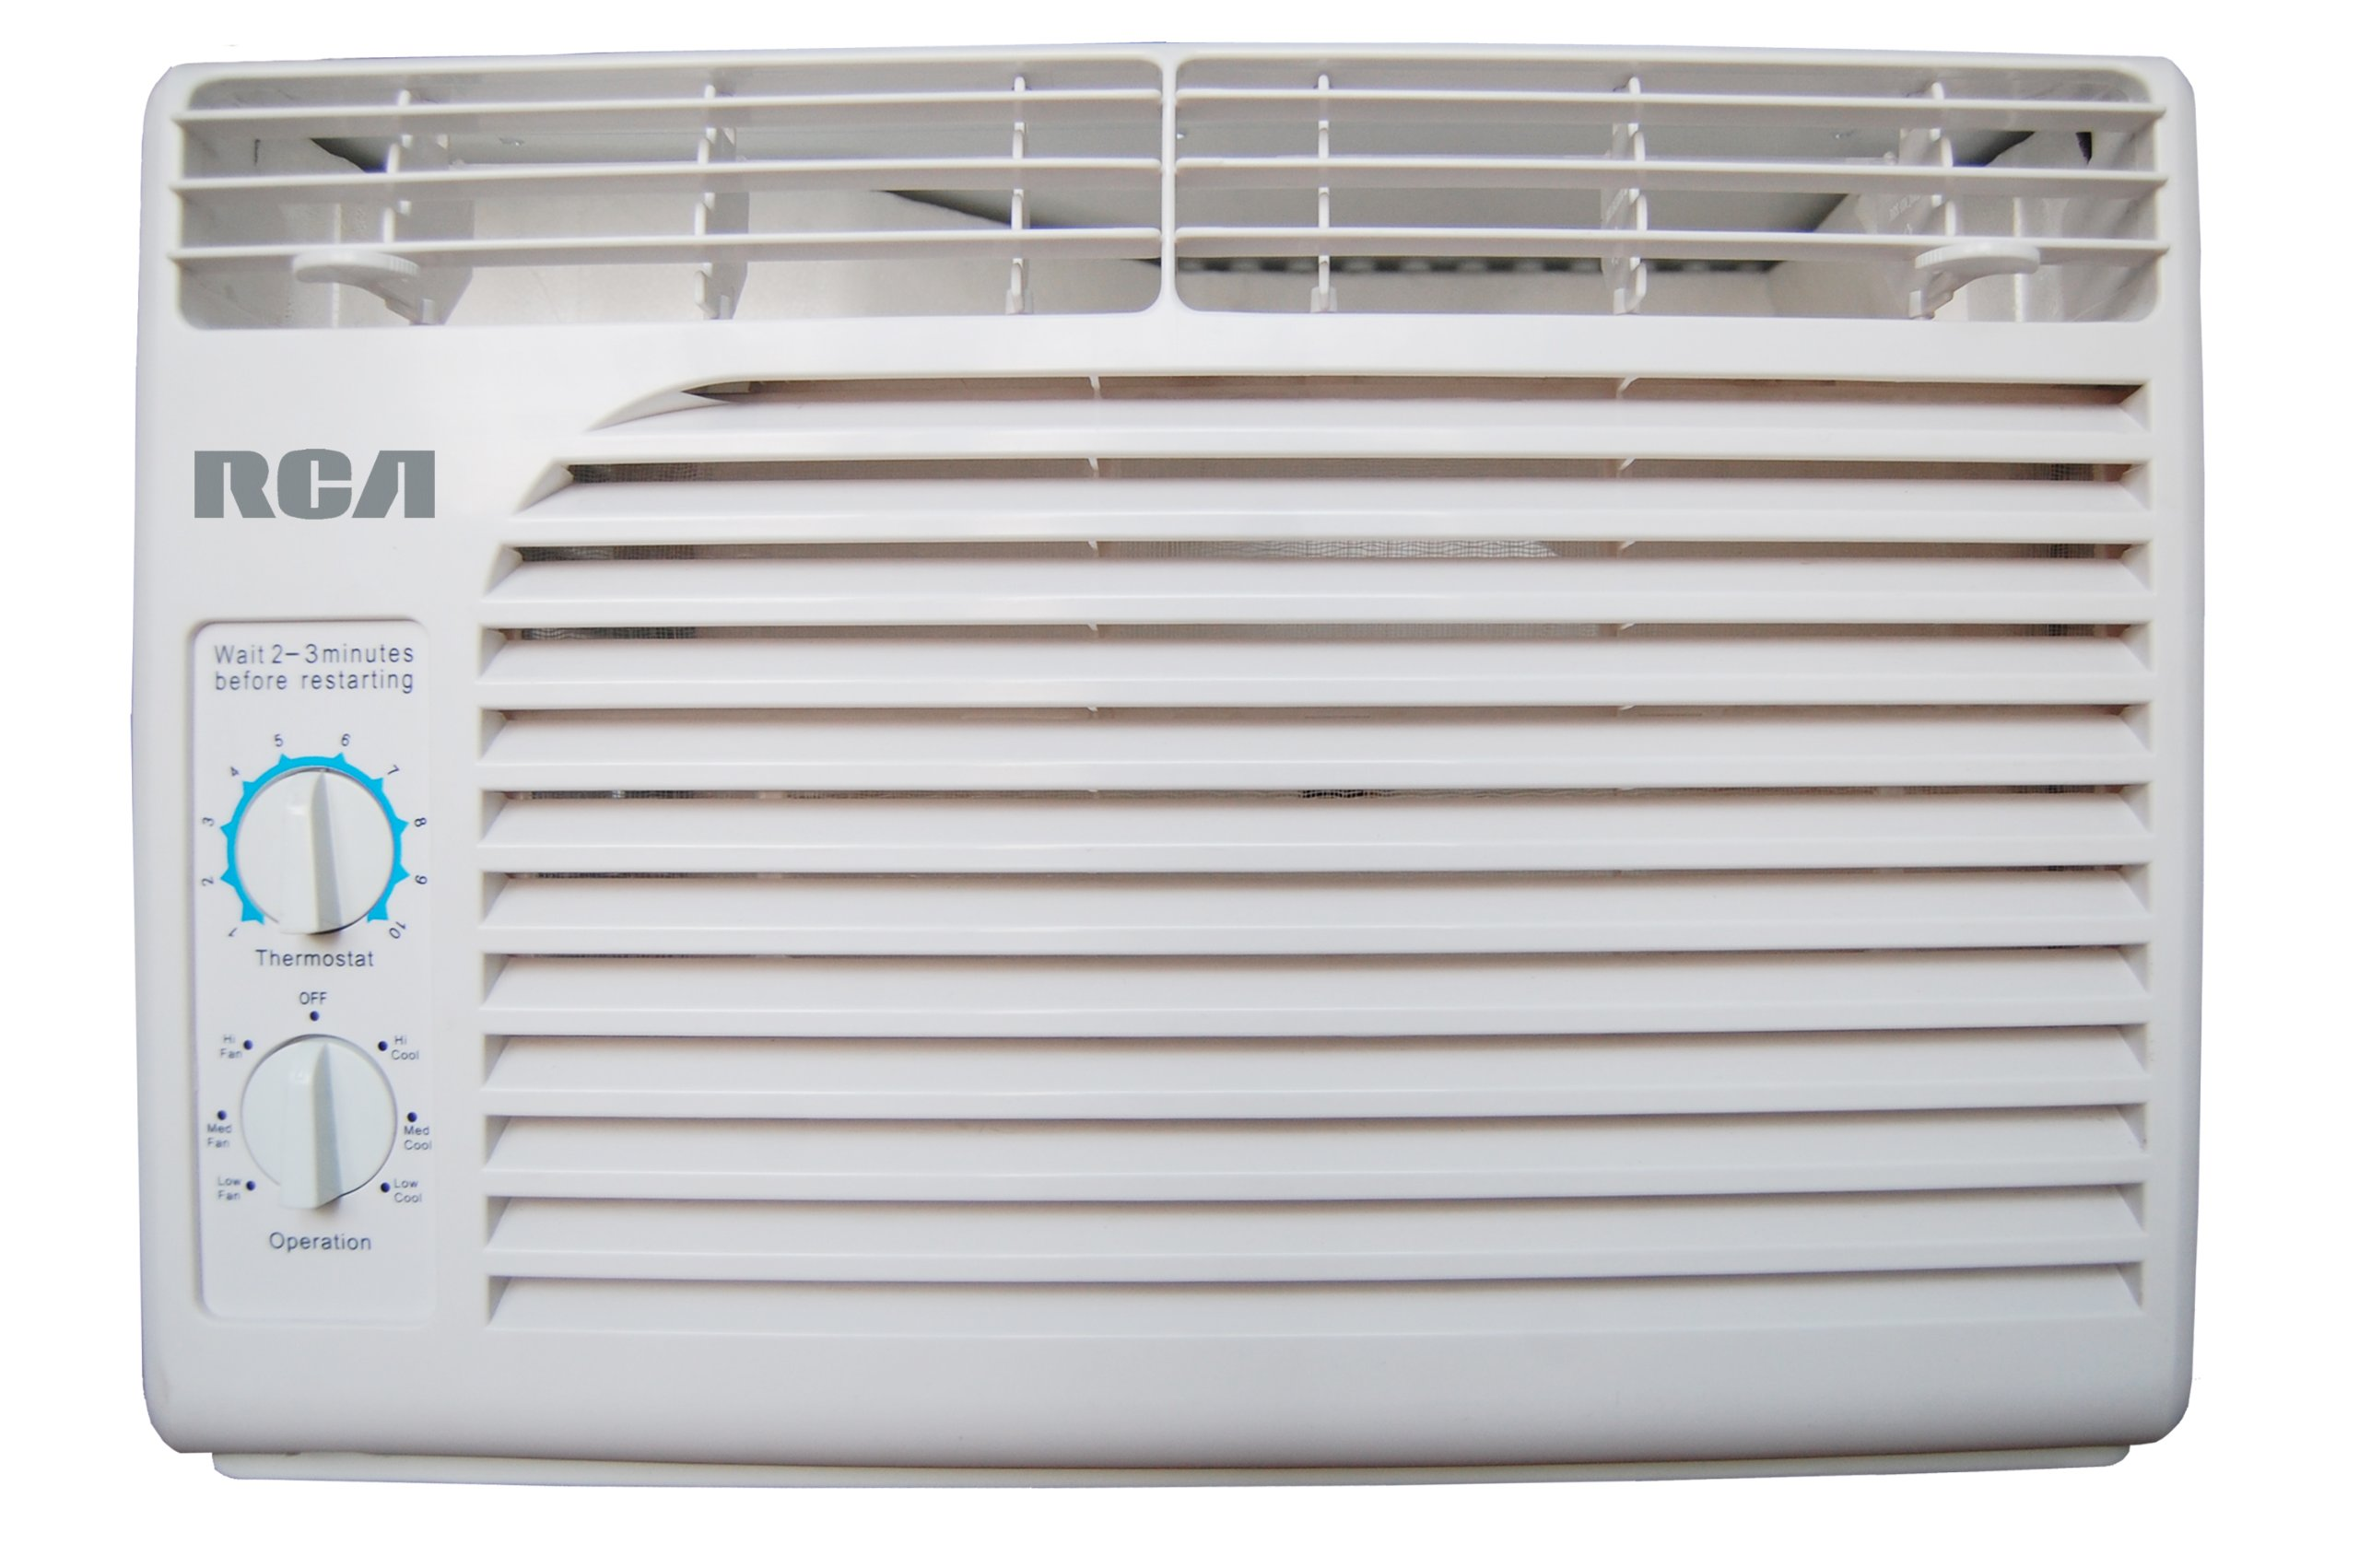 Igloo RCA 5000 BTU Window Air Conditioner by Igloo